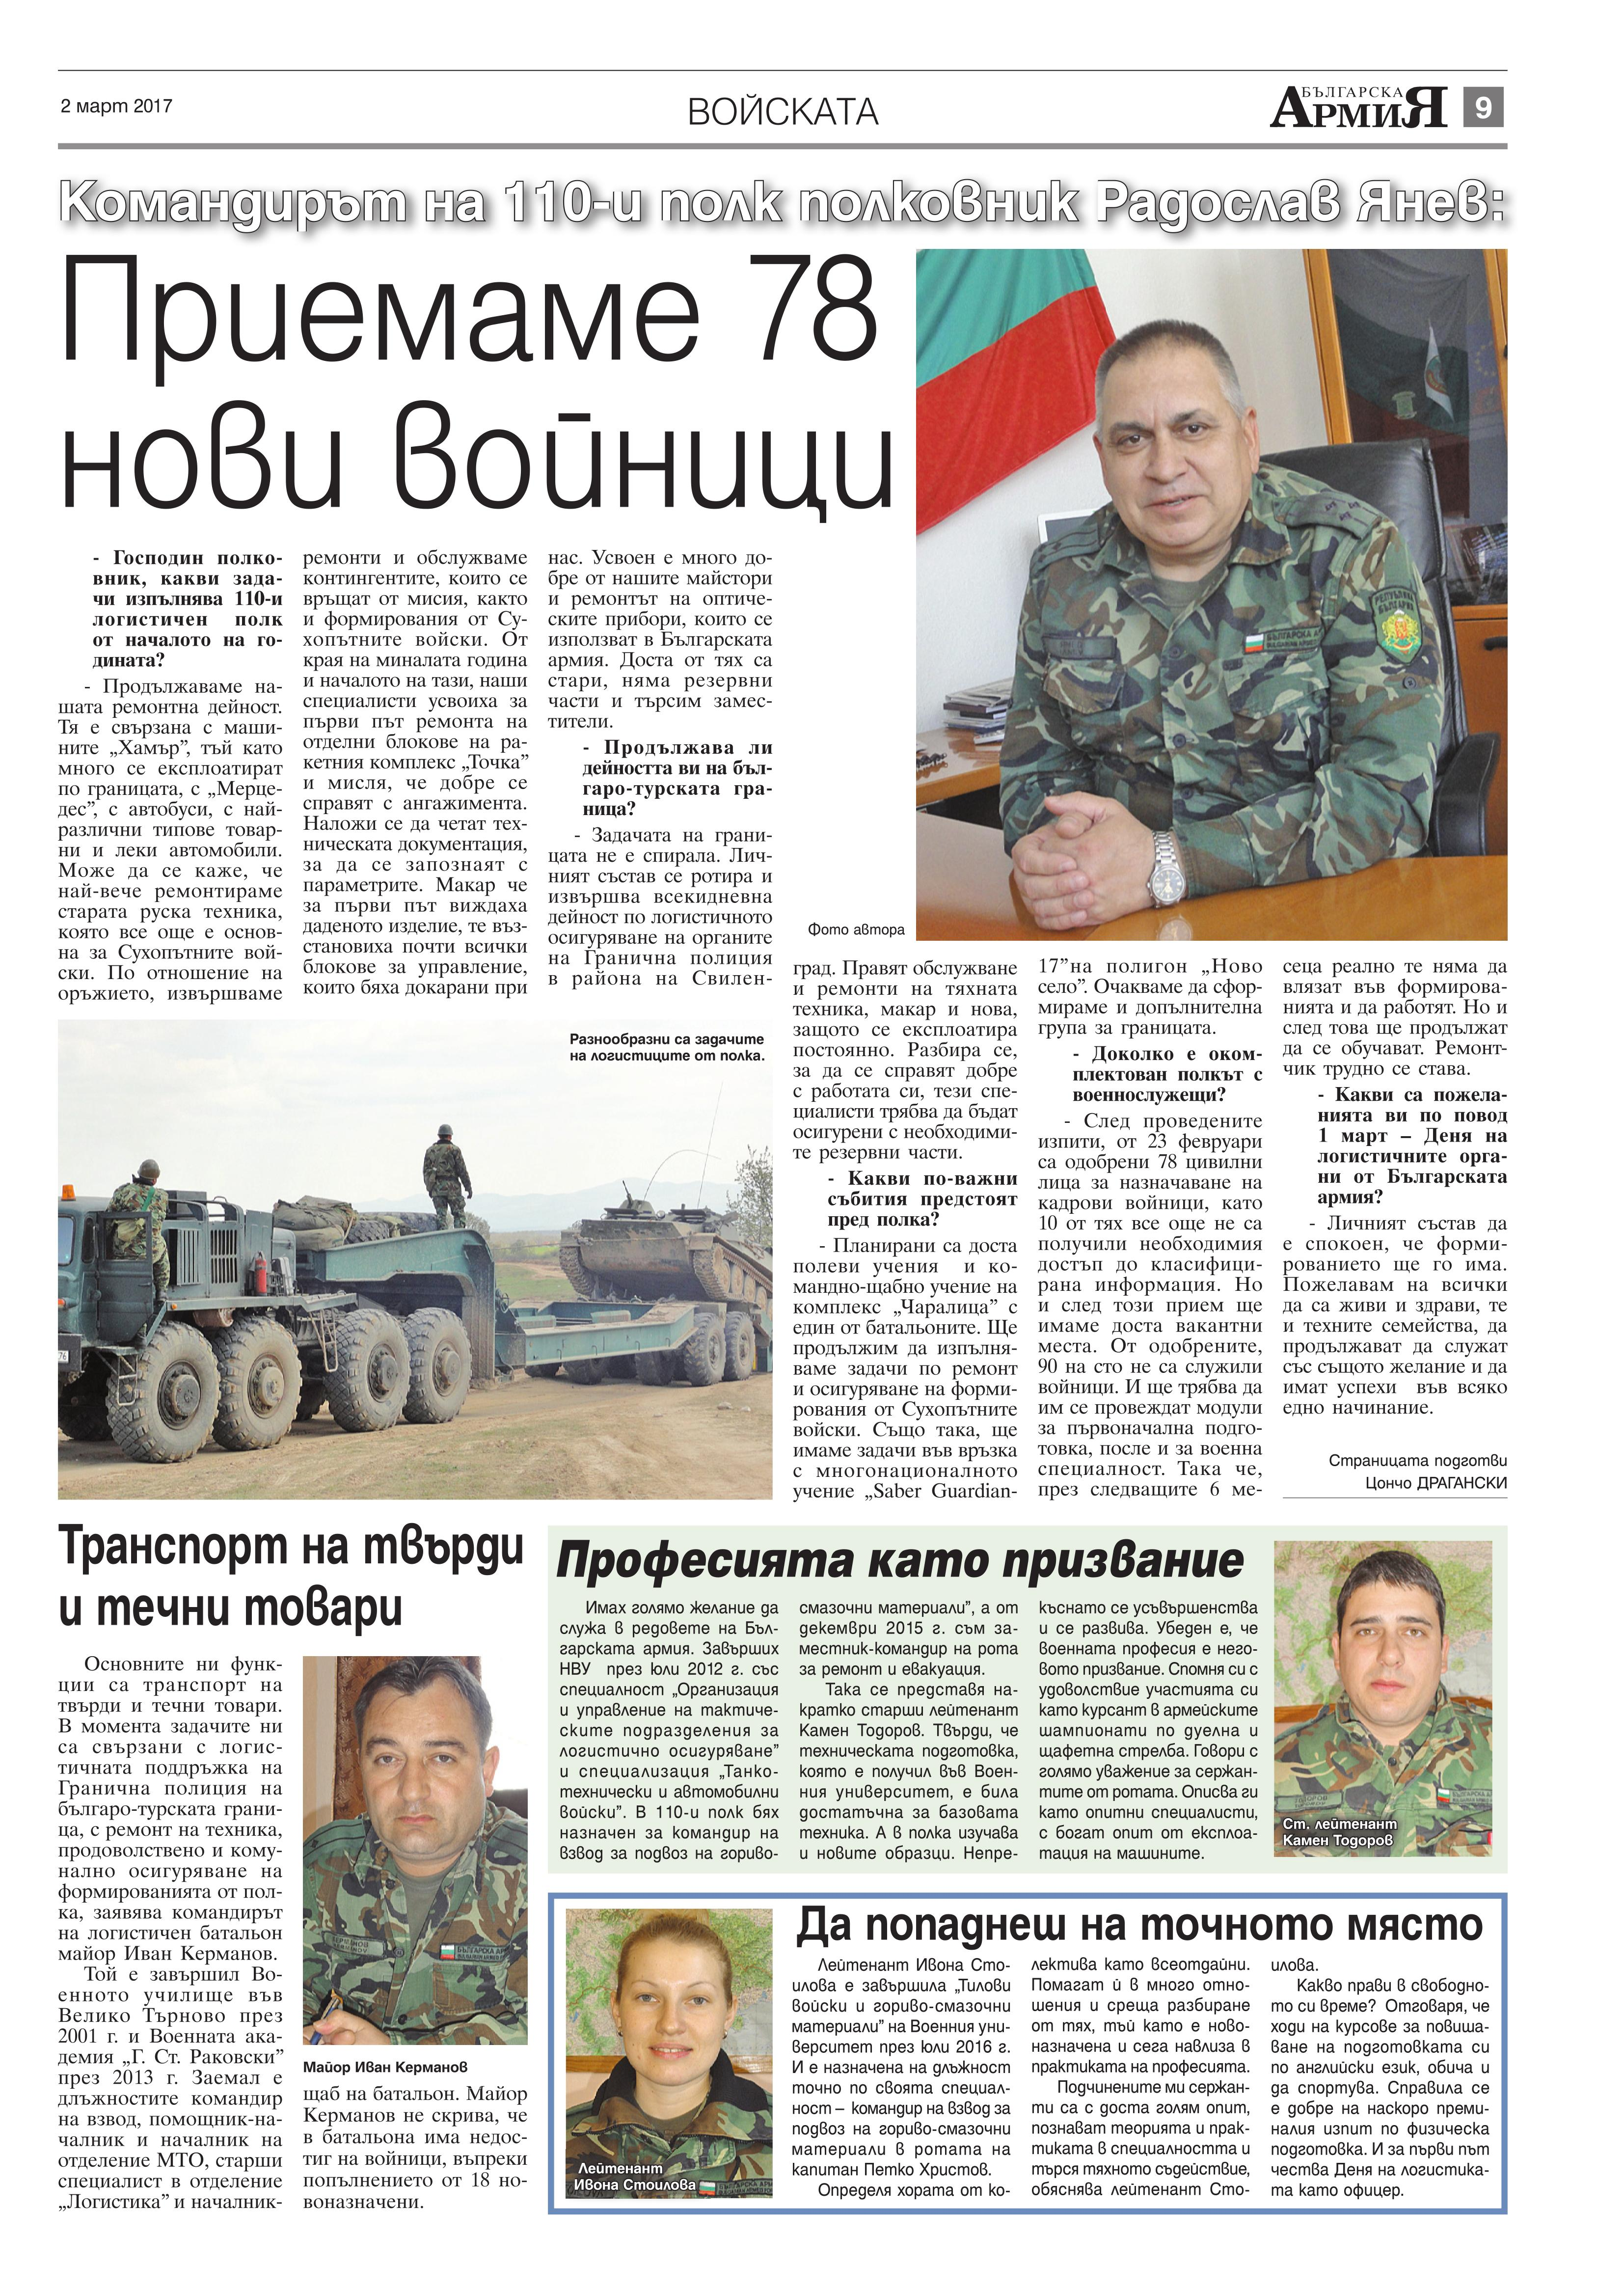 https://www.armymedia.bg/wp-content/uploads/2015/06/09.page1_-15.jpg